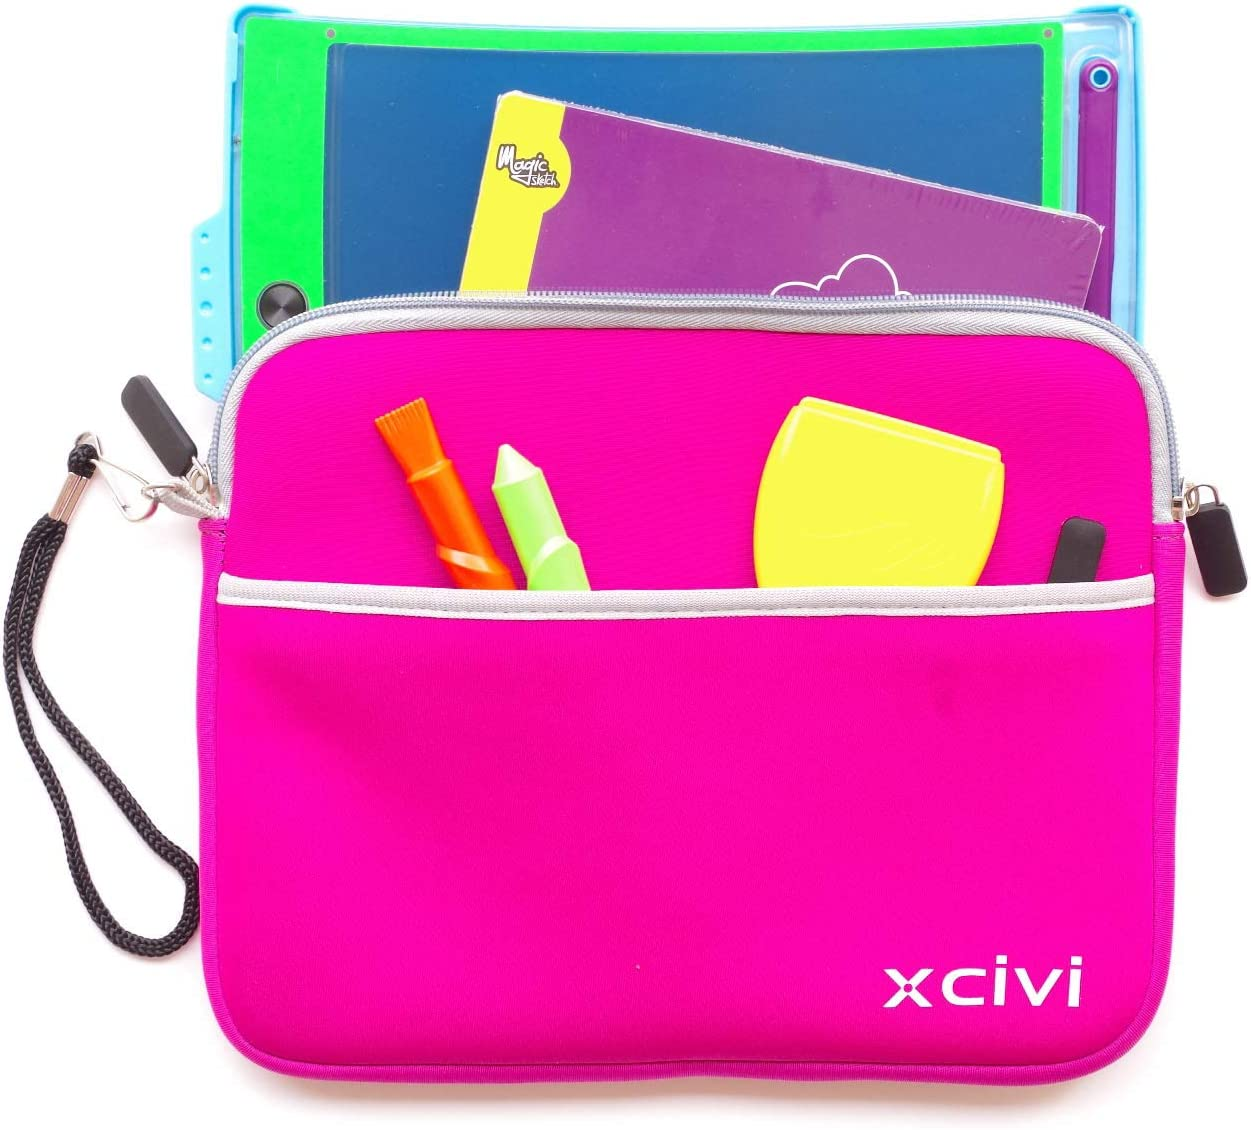 Blue Xcivi Neoprene Protective Carry Case for Boogie Board Scribble n Play with Zip Accessary Pocket